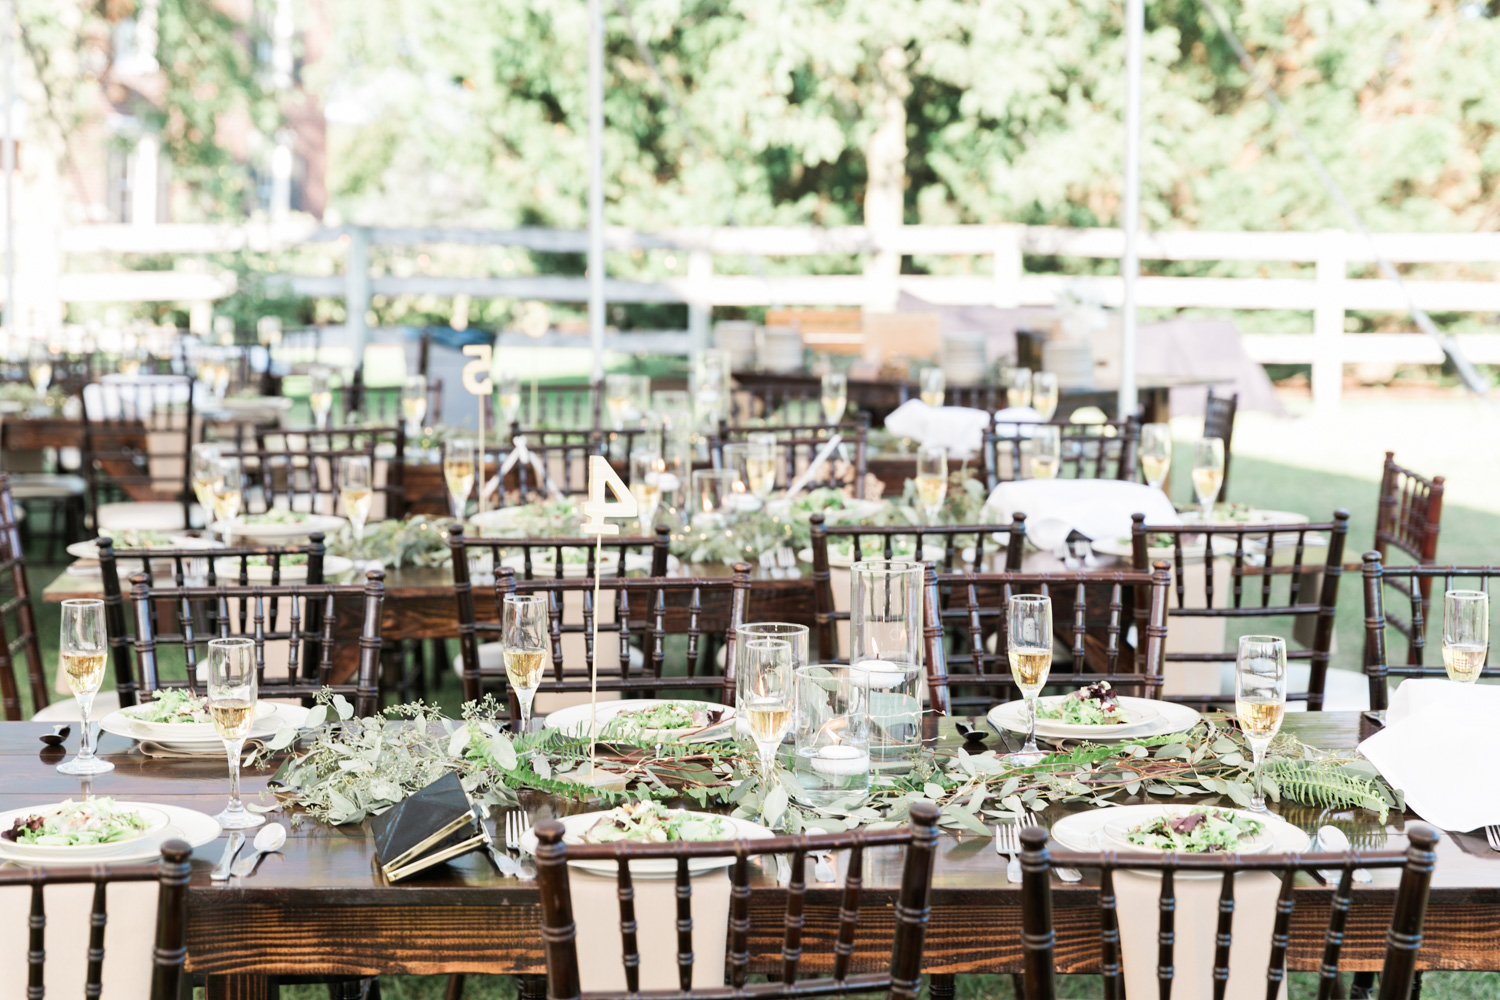 image of wedding reception tablescape under tent at Gettysburg